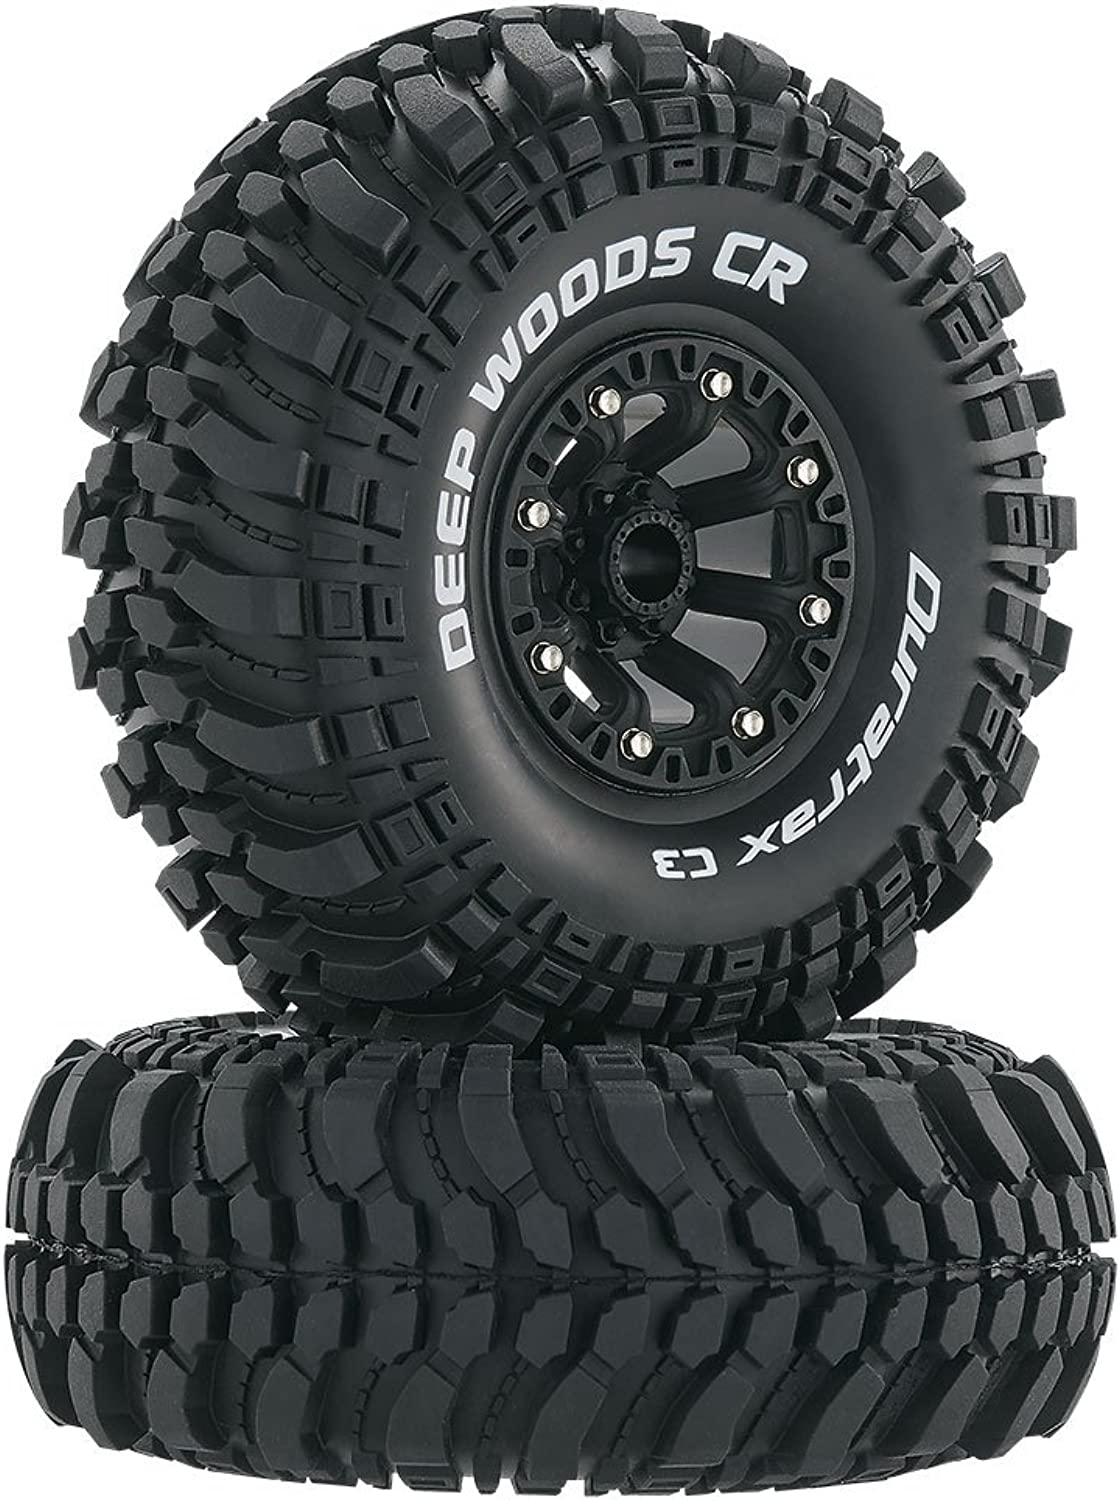 Duratrax Deep Woods 2.2  RC Rock Crawler Tires with Foam Inserts, High Traction, Mounted on Black Wheels, (Set of 2)